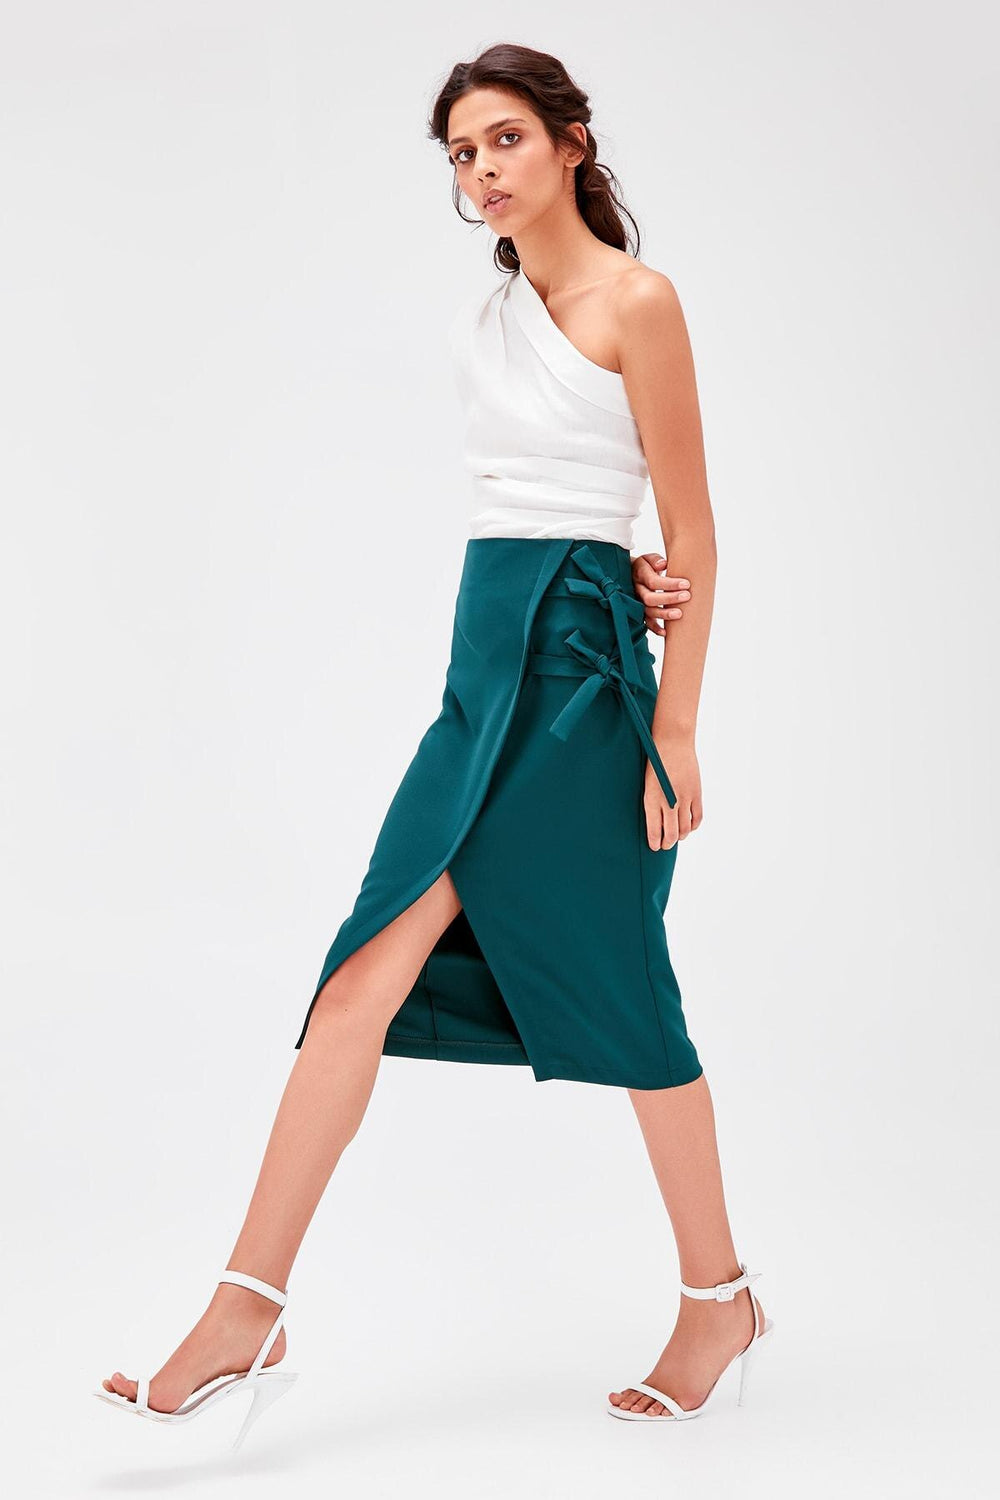 Emerald green Lacing Detailed Skirt - Top Maxy